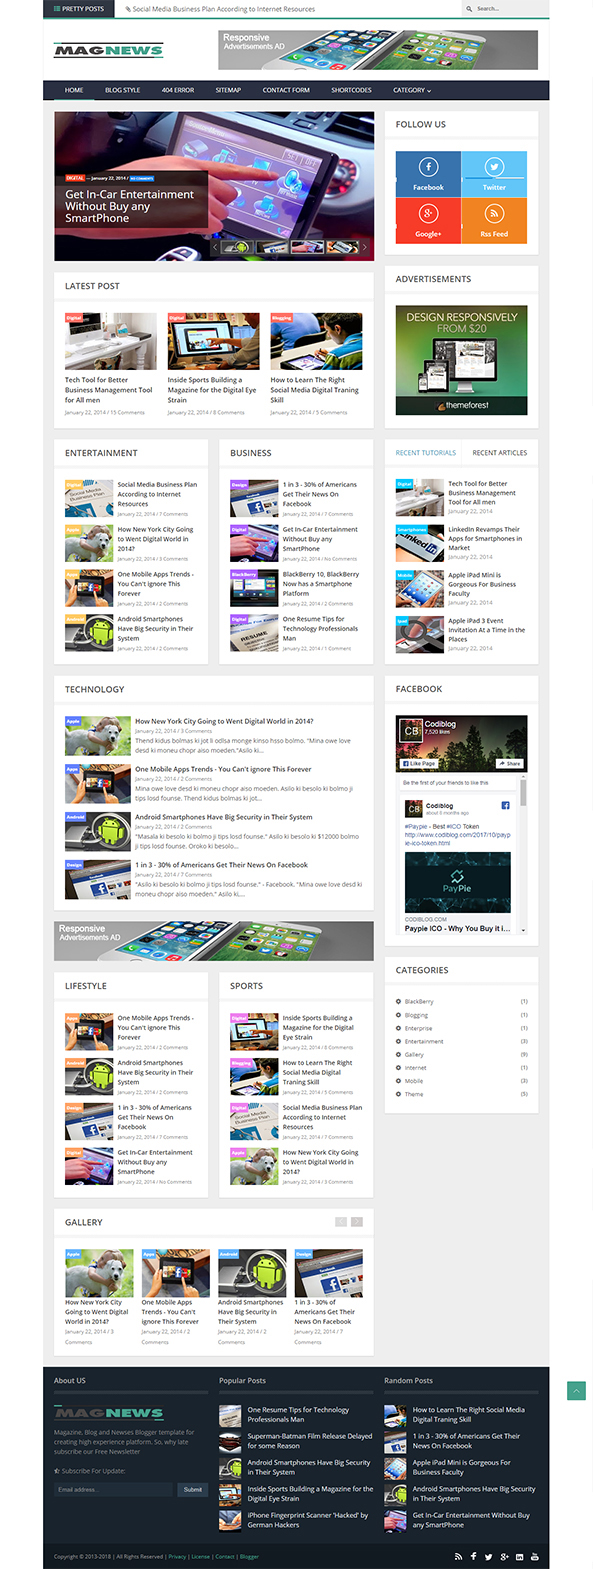 Cleanblog - A Responsive Blogging Blogger Template